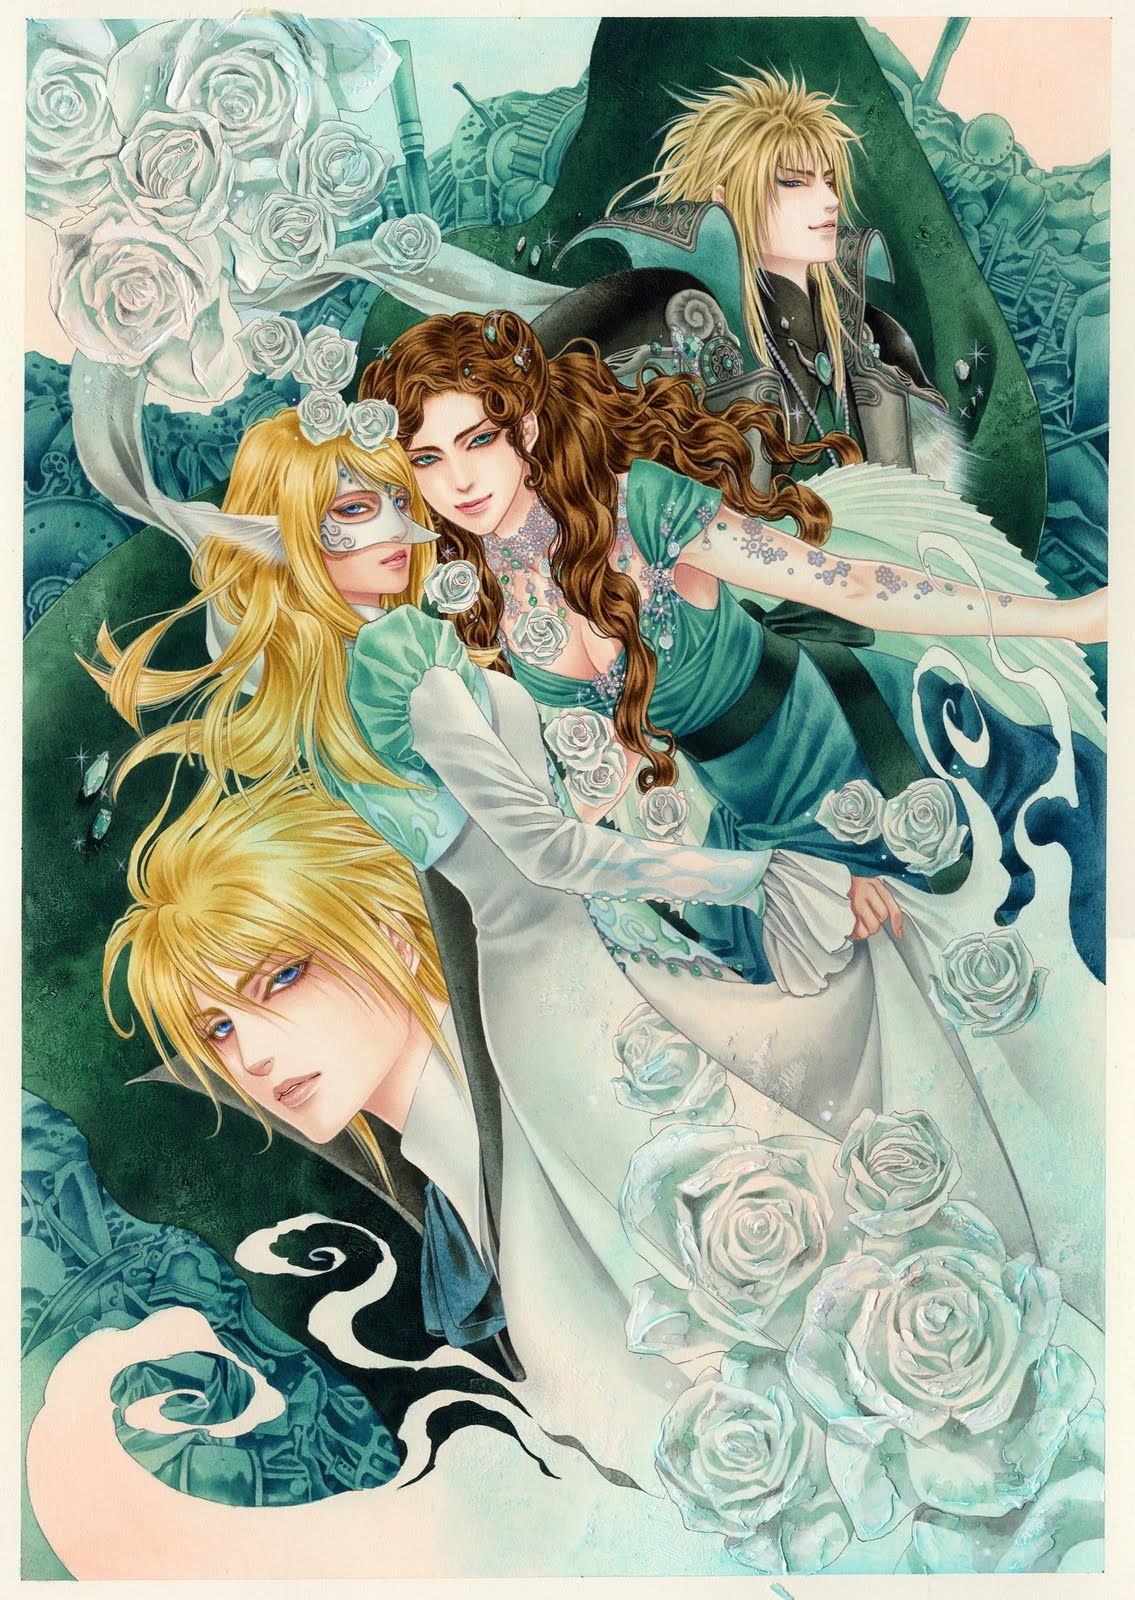 Labyrinth DAVID BOWIE IN ANIME HAS TO BE THE BEST THING EVER